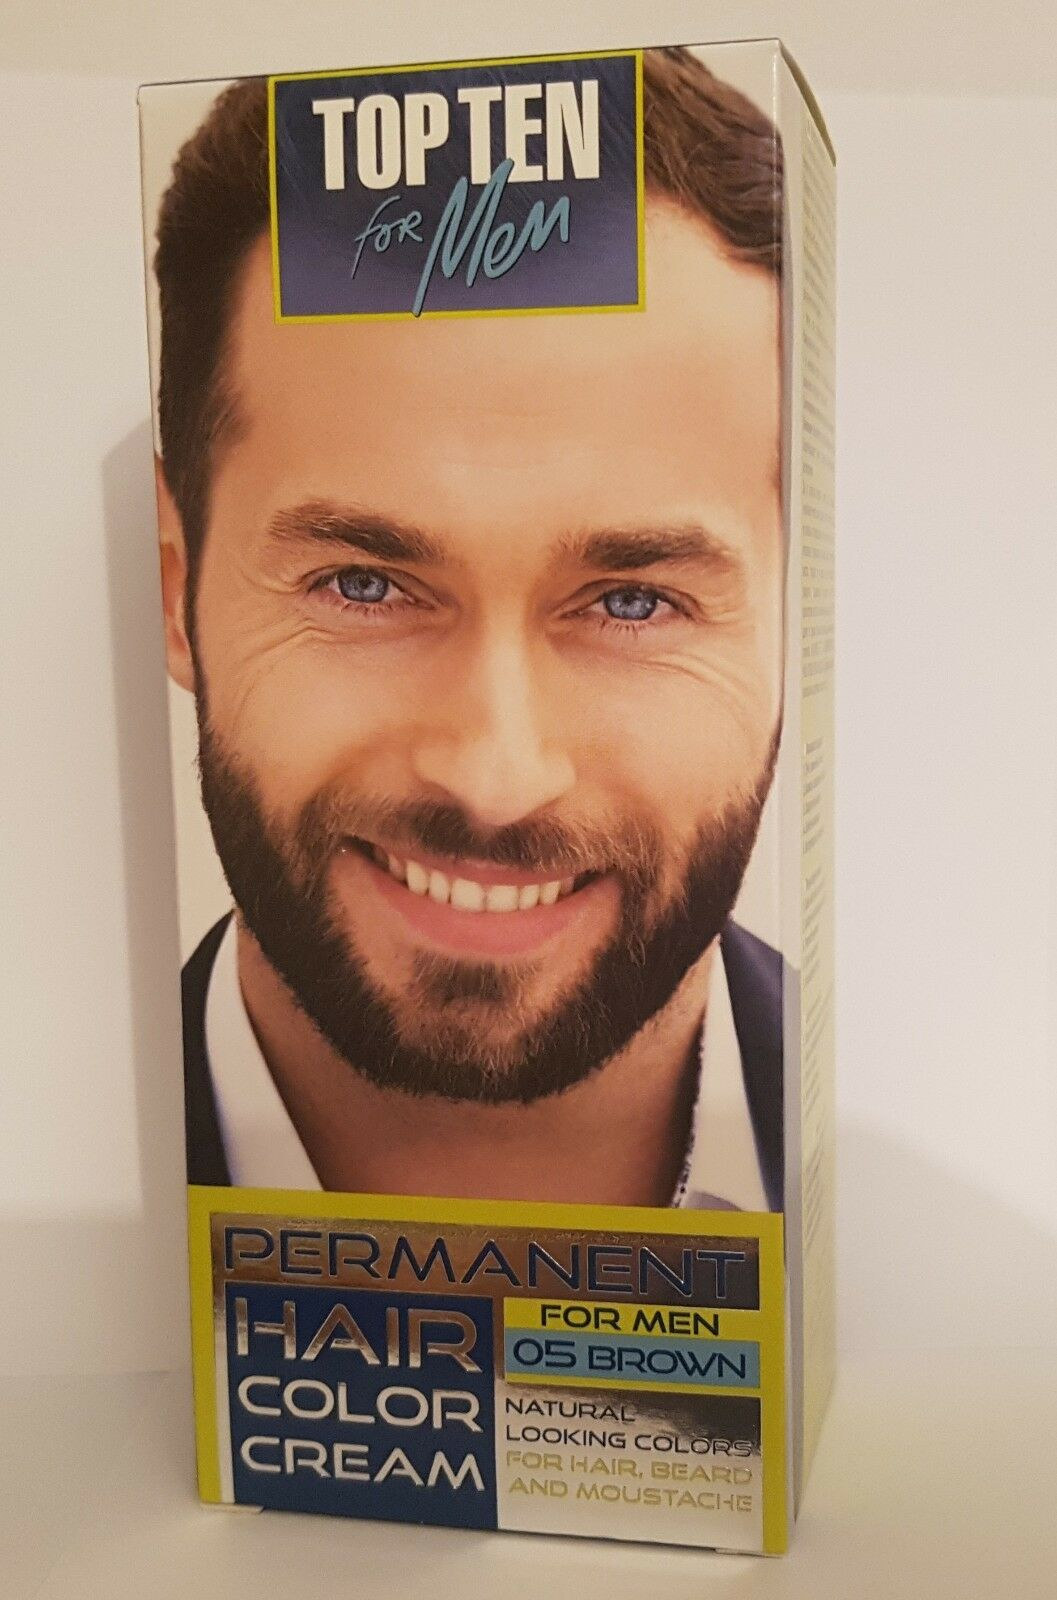 Best Permanent Hair Beard And Moustache Color For Men 0 Ammonia Top